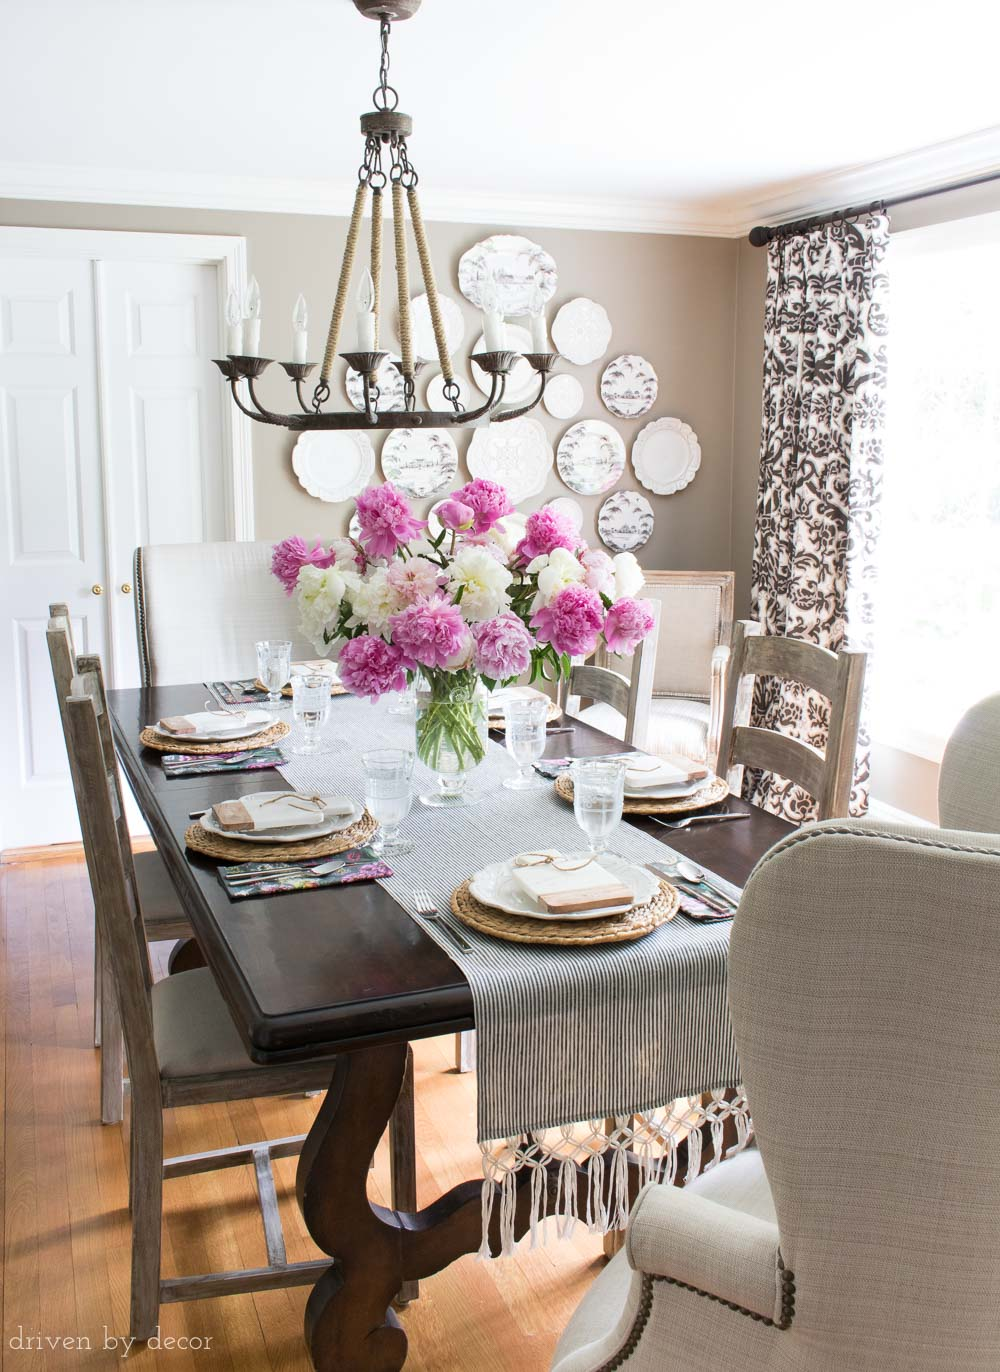 Home Goods Kitchen Chairs : goods, kitchen, chairs, Inexpensive, Dining, Chairs, (That, Don't, Cheap!), Driven, Decor